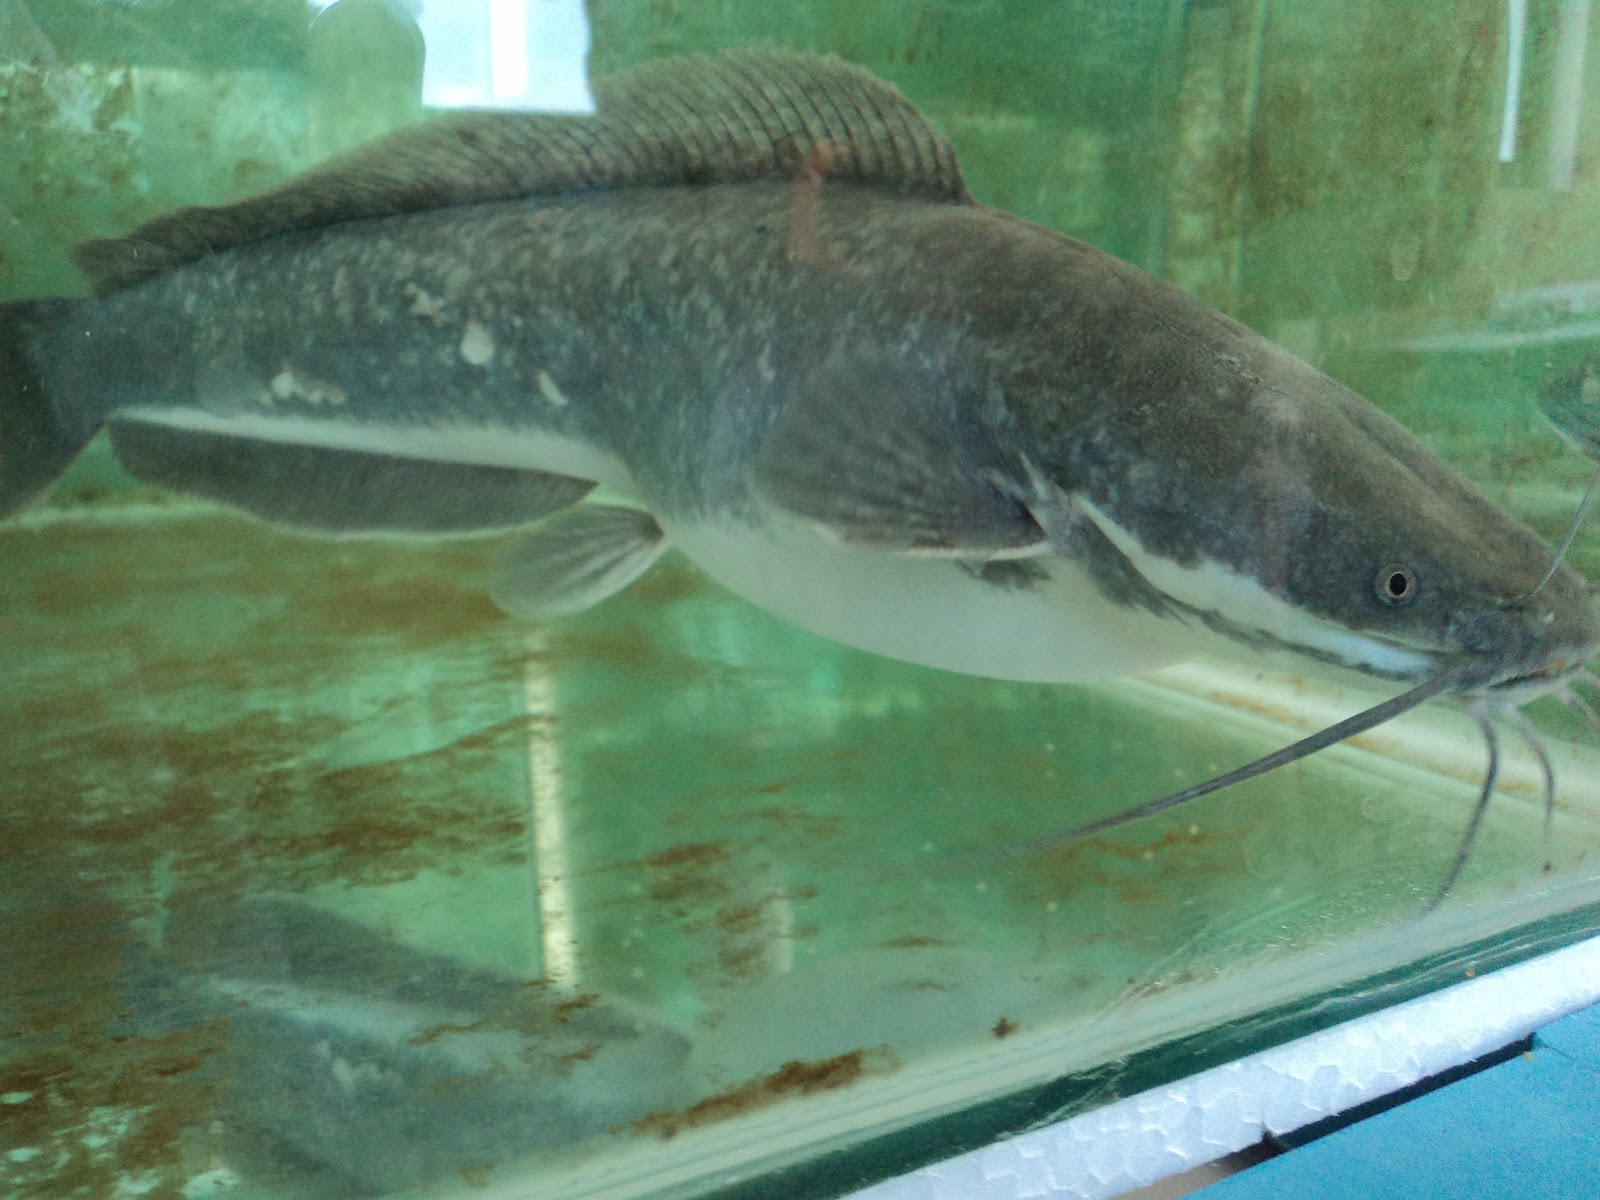 African catfish pictures - photo#14